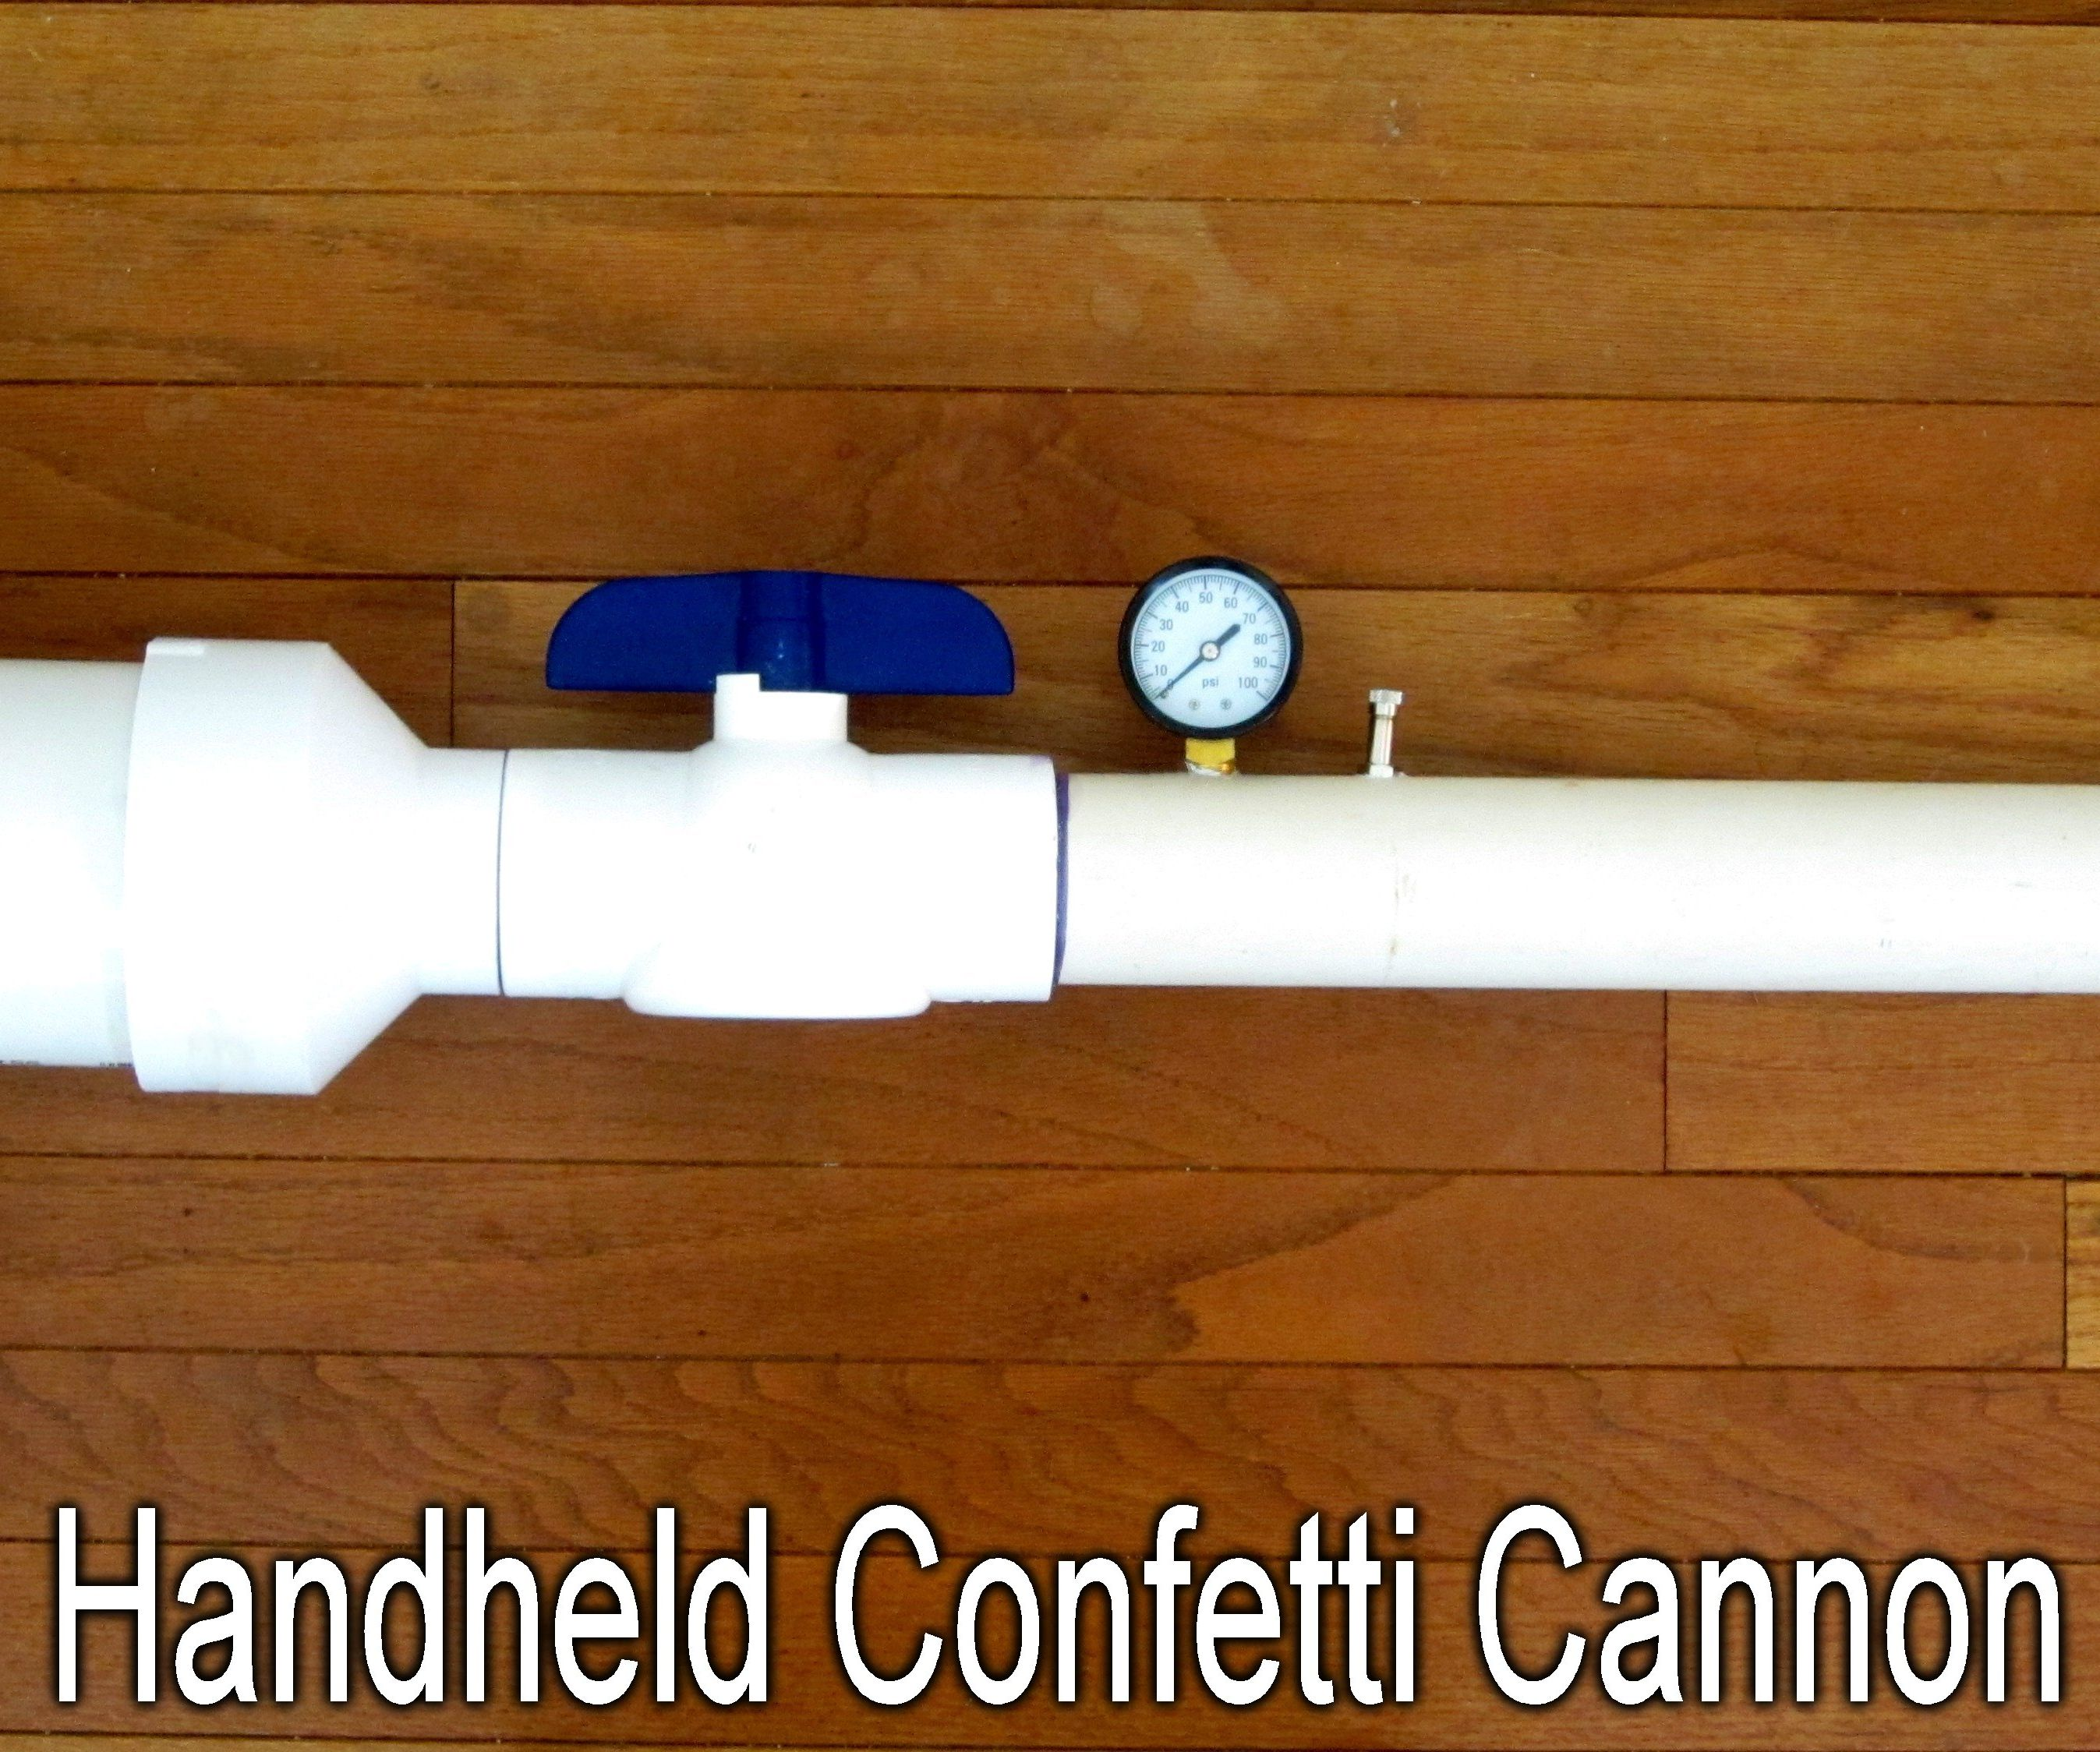 Handheld Confetti Cannon 10 Steps With Pictures